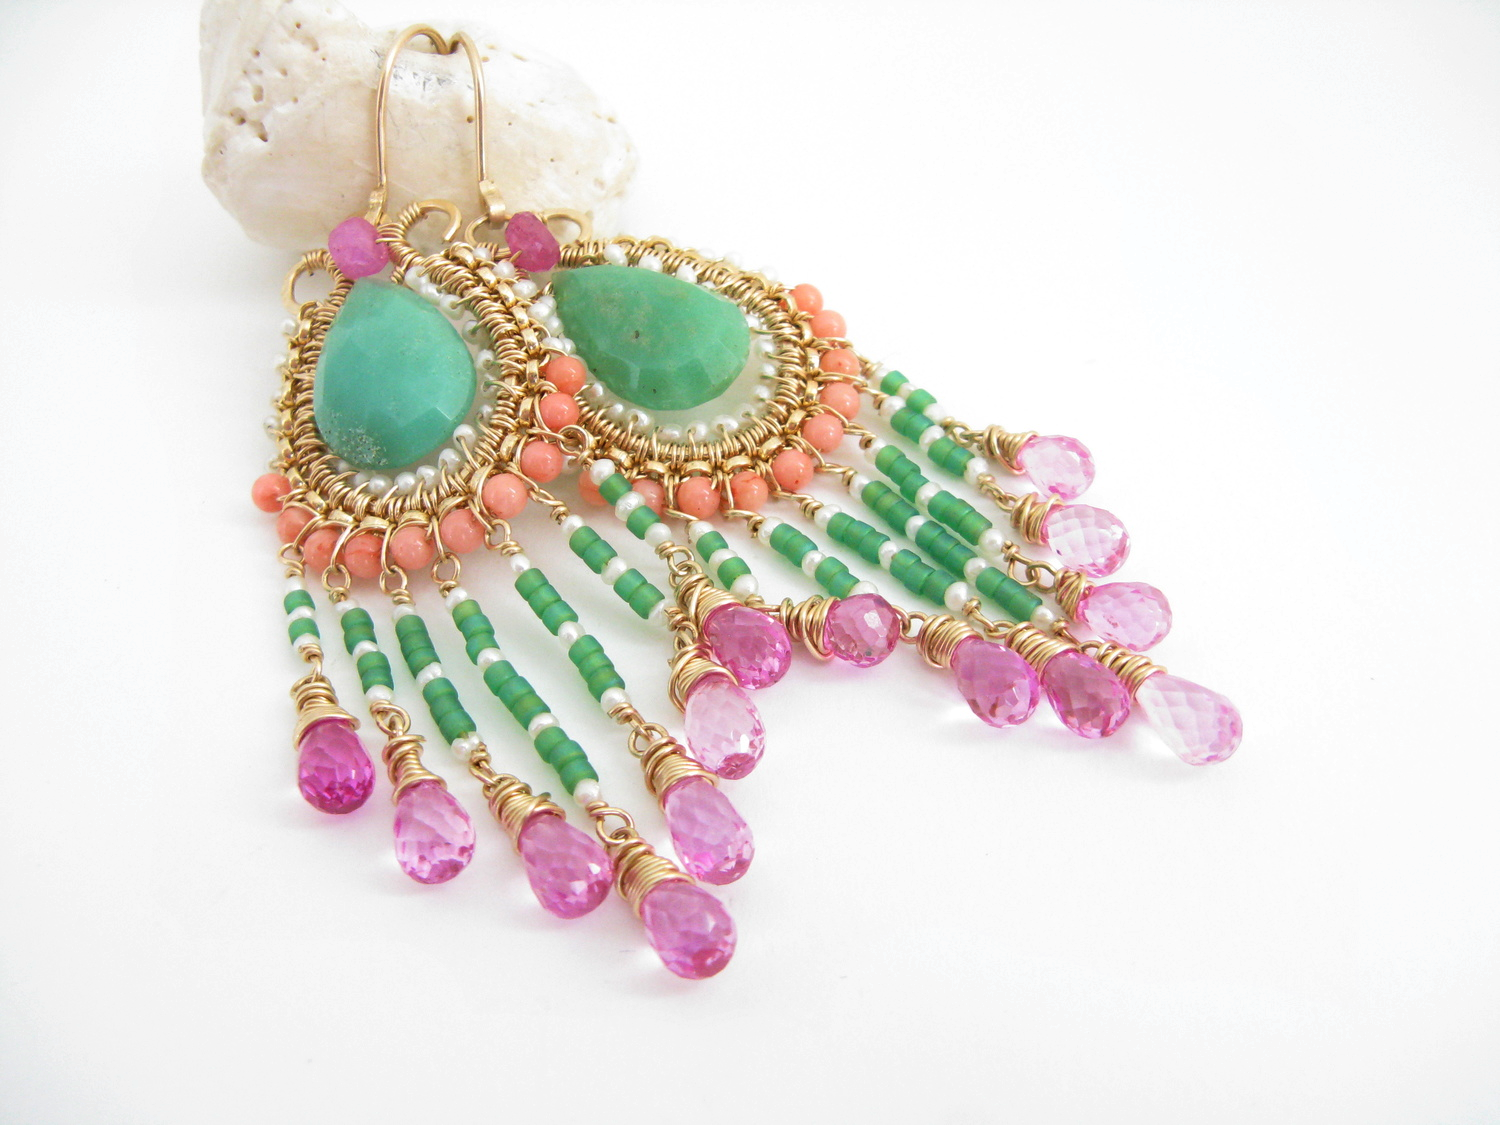 Chrysoprase, coral, pearl, pink topaz, 14k Rolled Gold chandelier earrings.